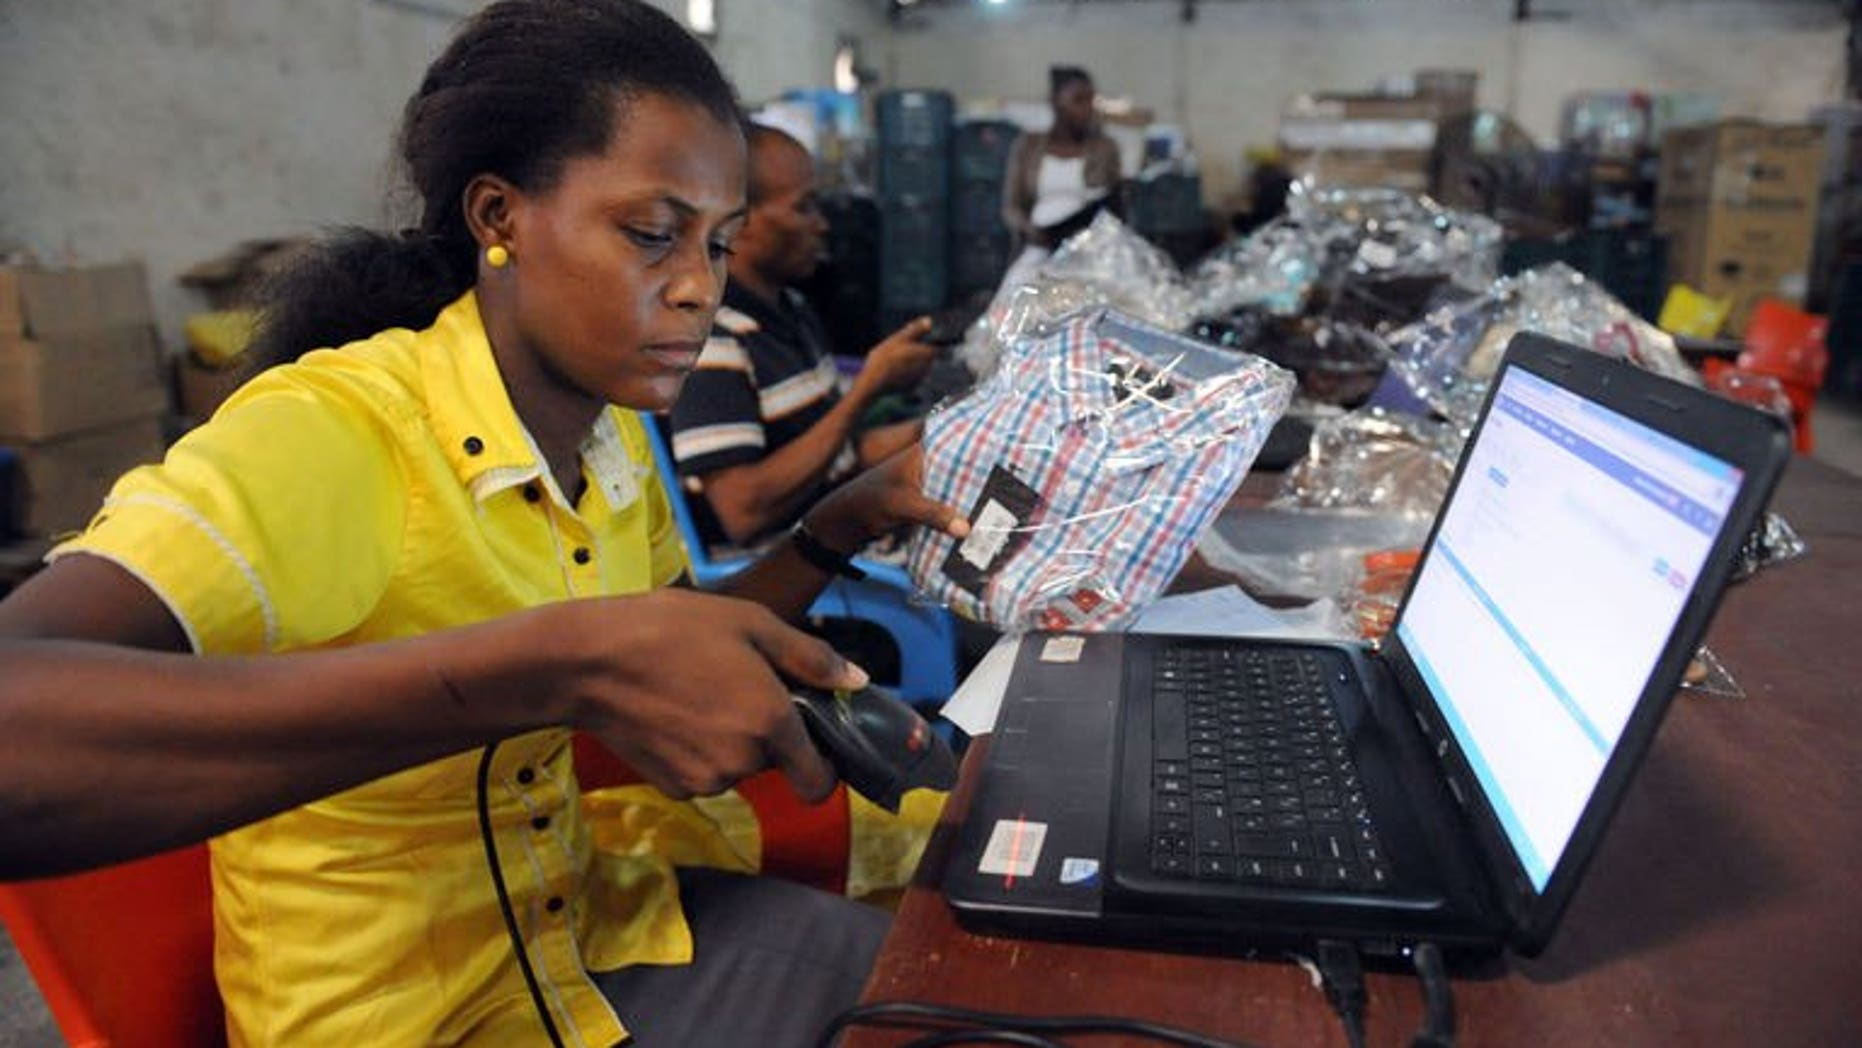 A worker at Internet company Jumia scans a product in Lagos, Nigeria on June 12, 2013. Nigeria, Africa's biggest market of 160 million people, has seen Internet access expand rapidly in recent years, opening opportunities for companies to exploit.